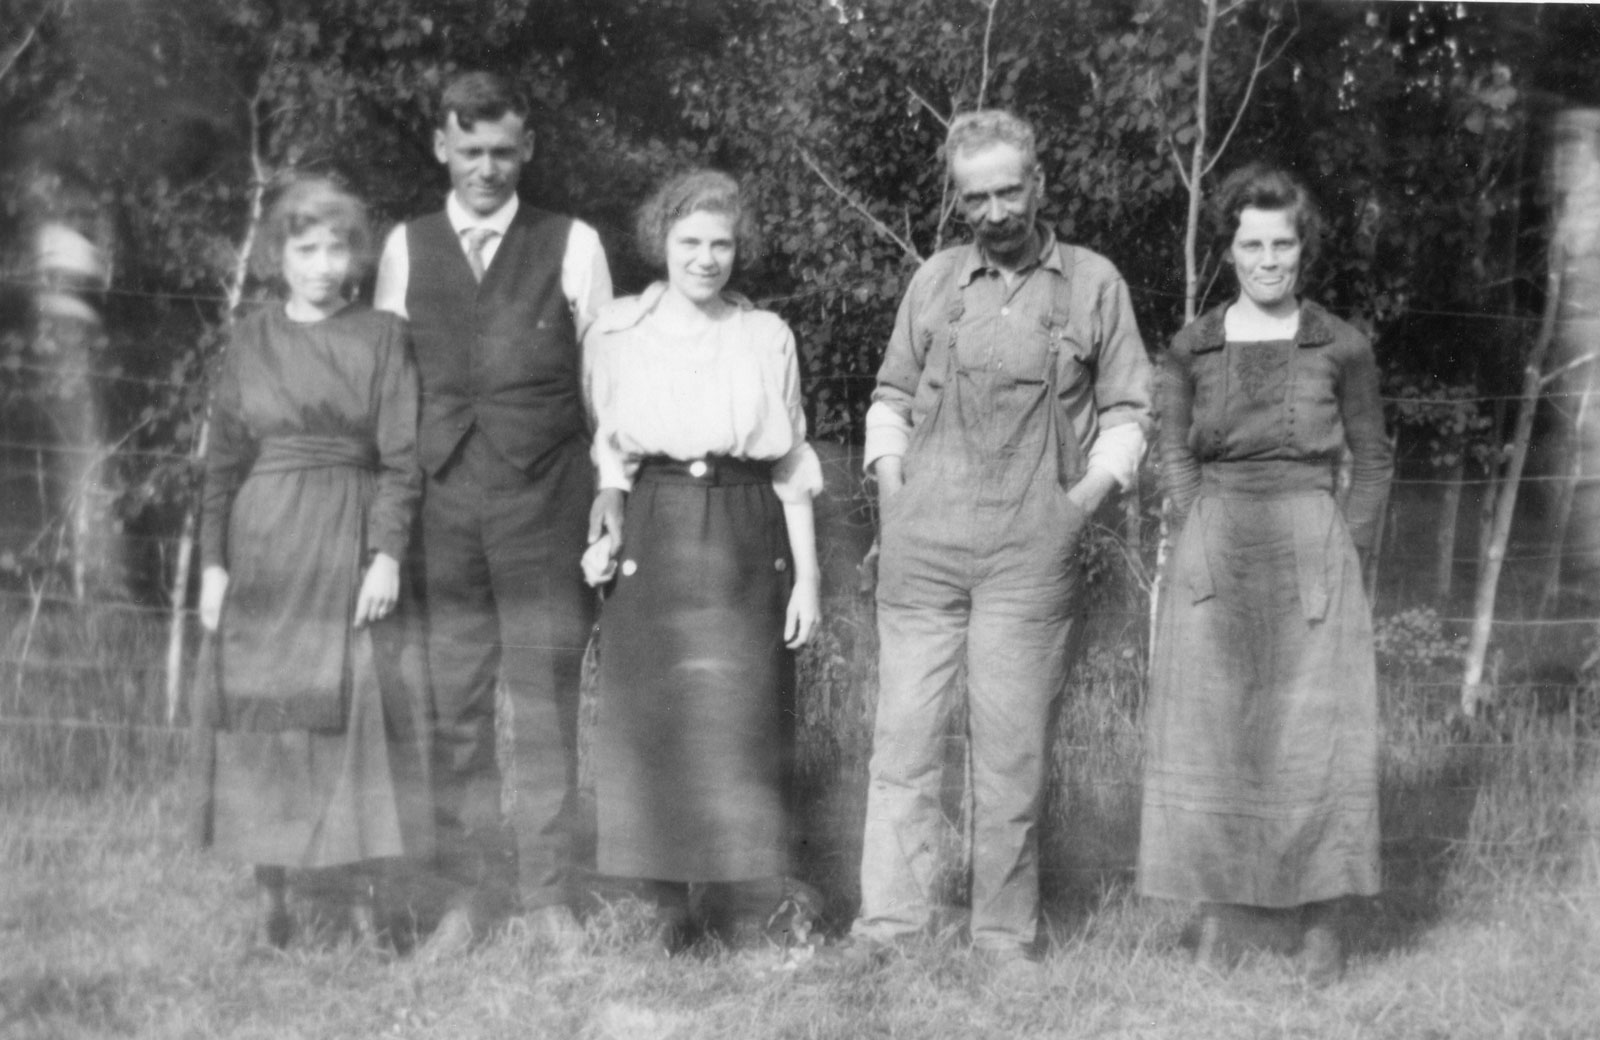 Homesteaders came from across the world to claim land and build farms in Ontario. <br>Here, the Hanson family circa 1922. Courtesy the South River - Machar Union Public Library.